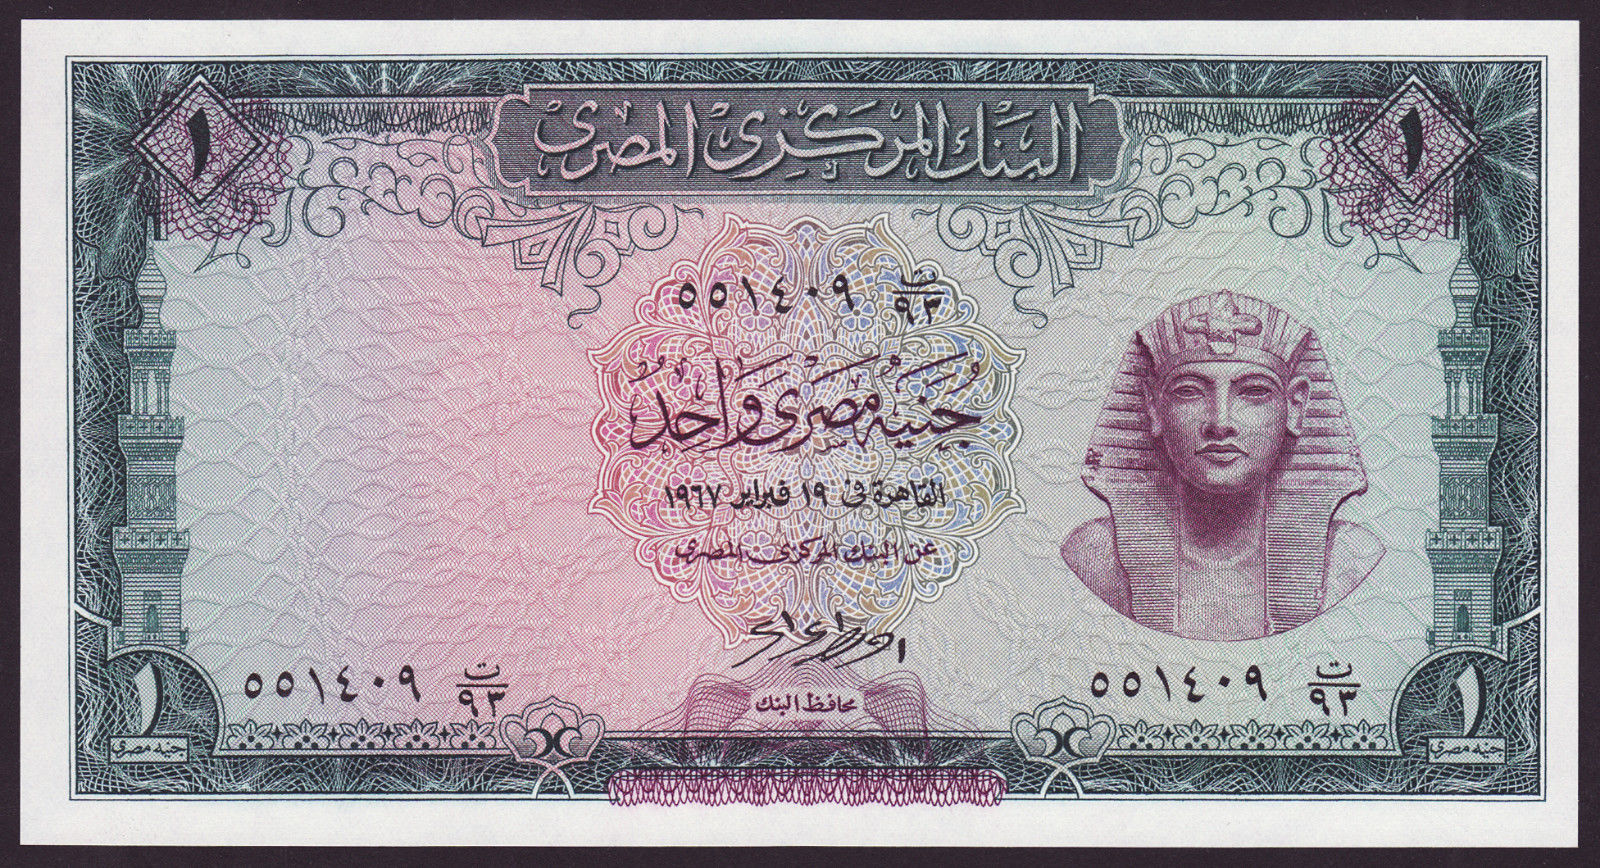 Egypt 1 Pound Banknote 1967 Pharaoh Tutankhamun World